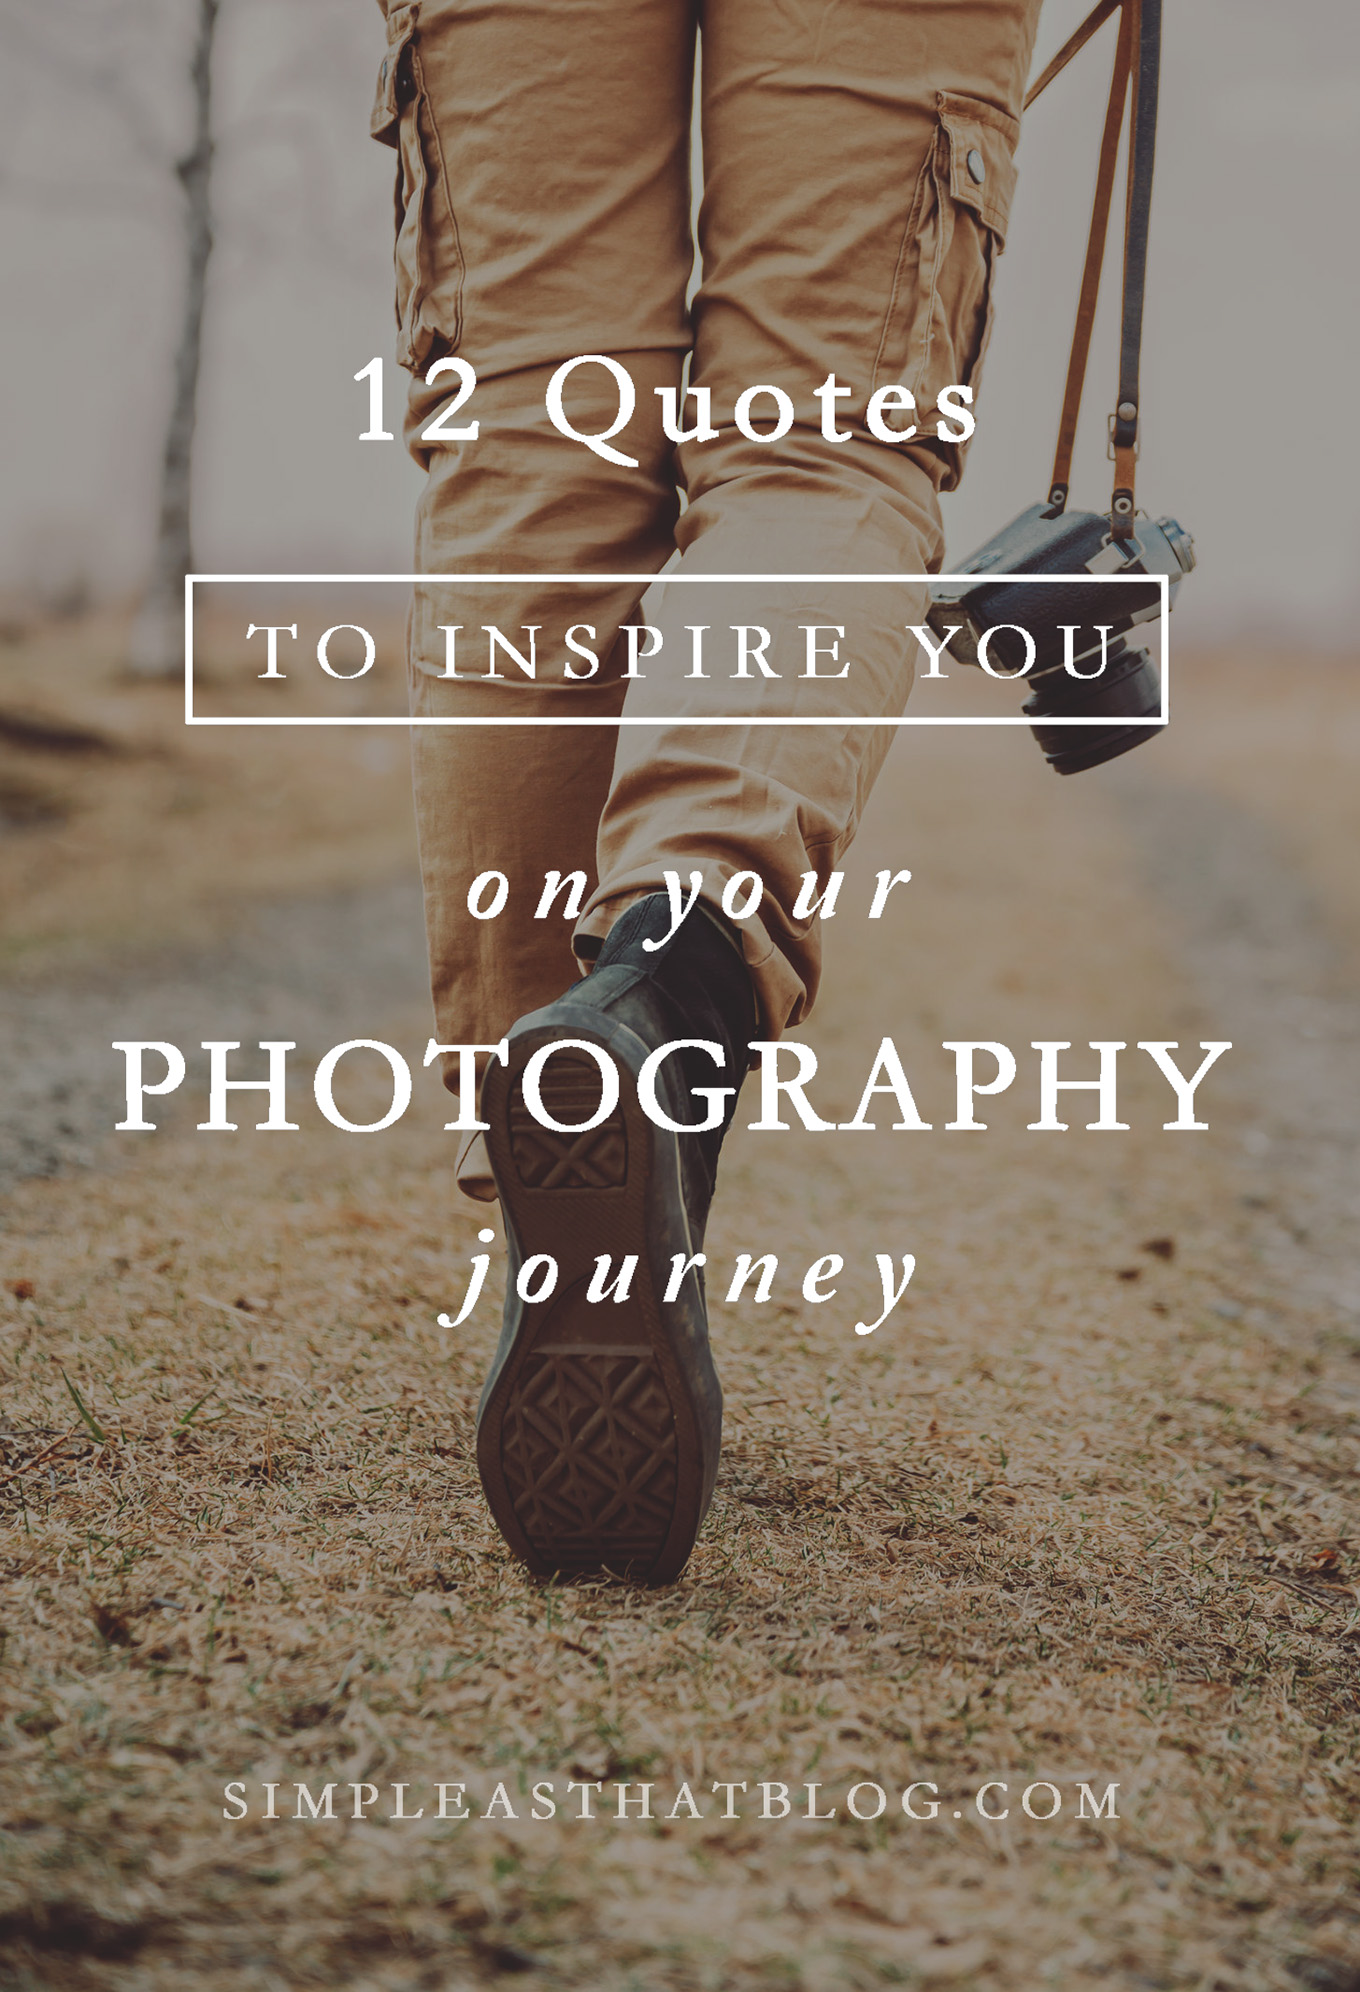 Quotes Photography 12 Quotes Inspire Photography Journey